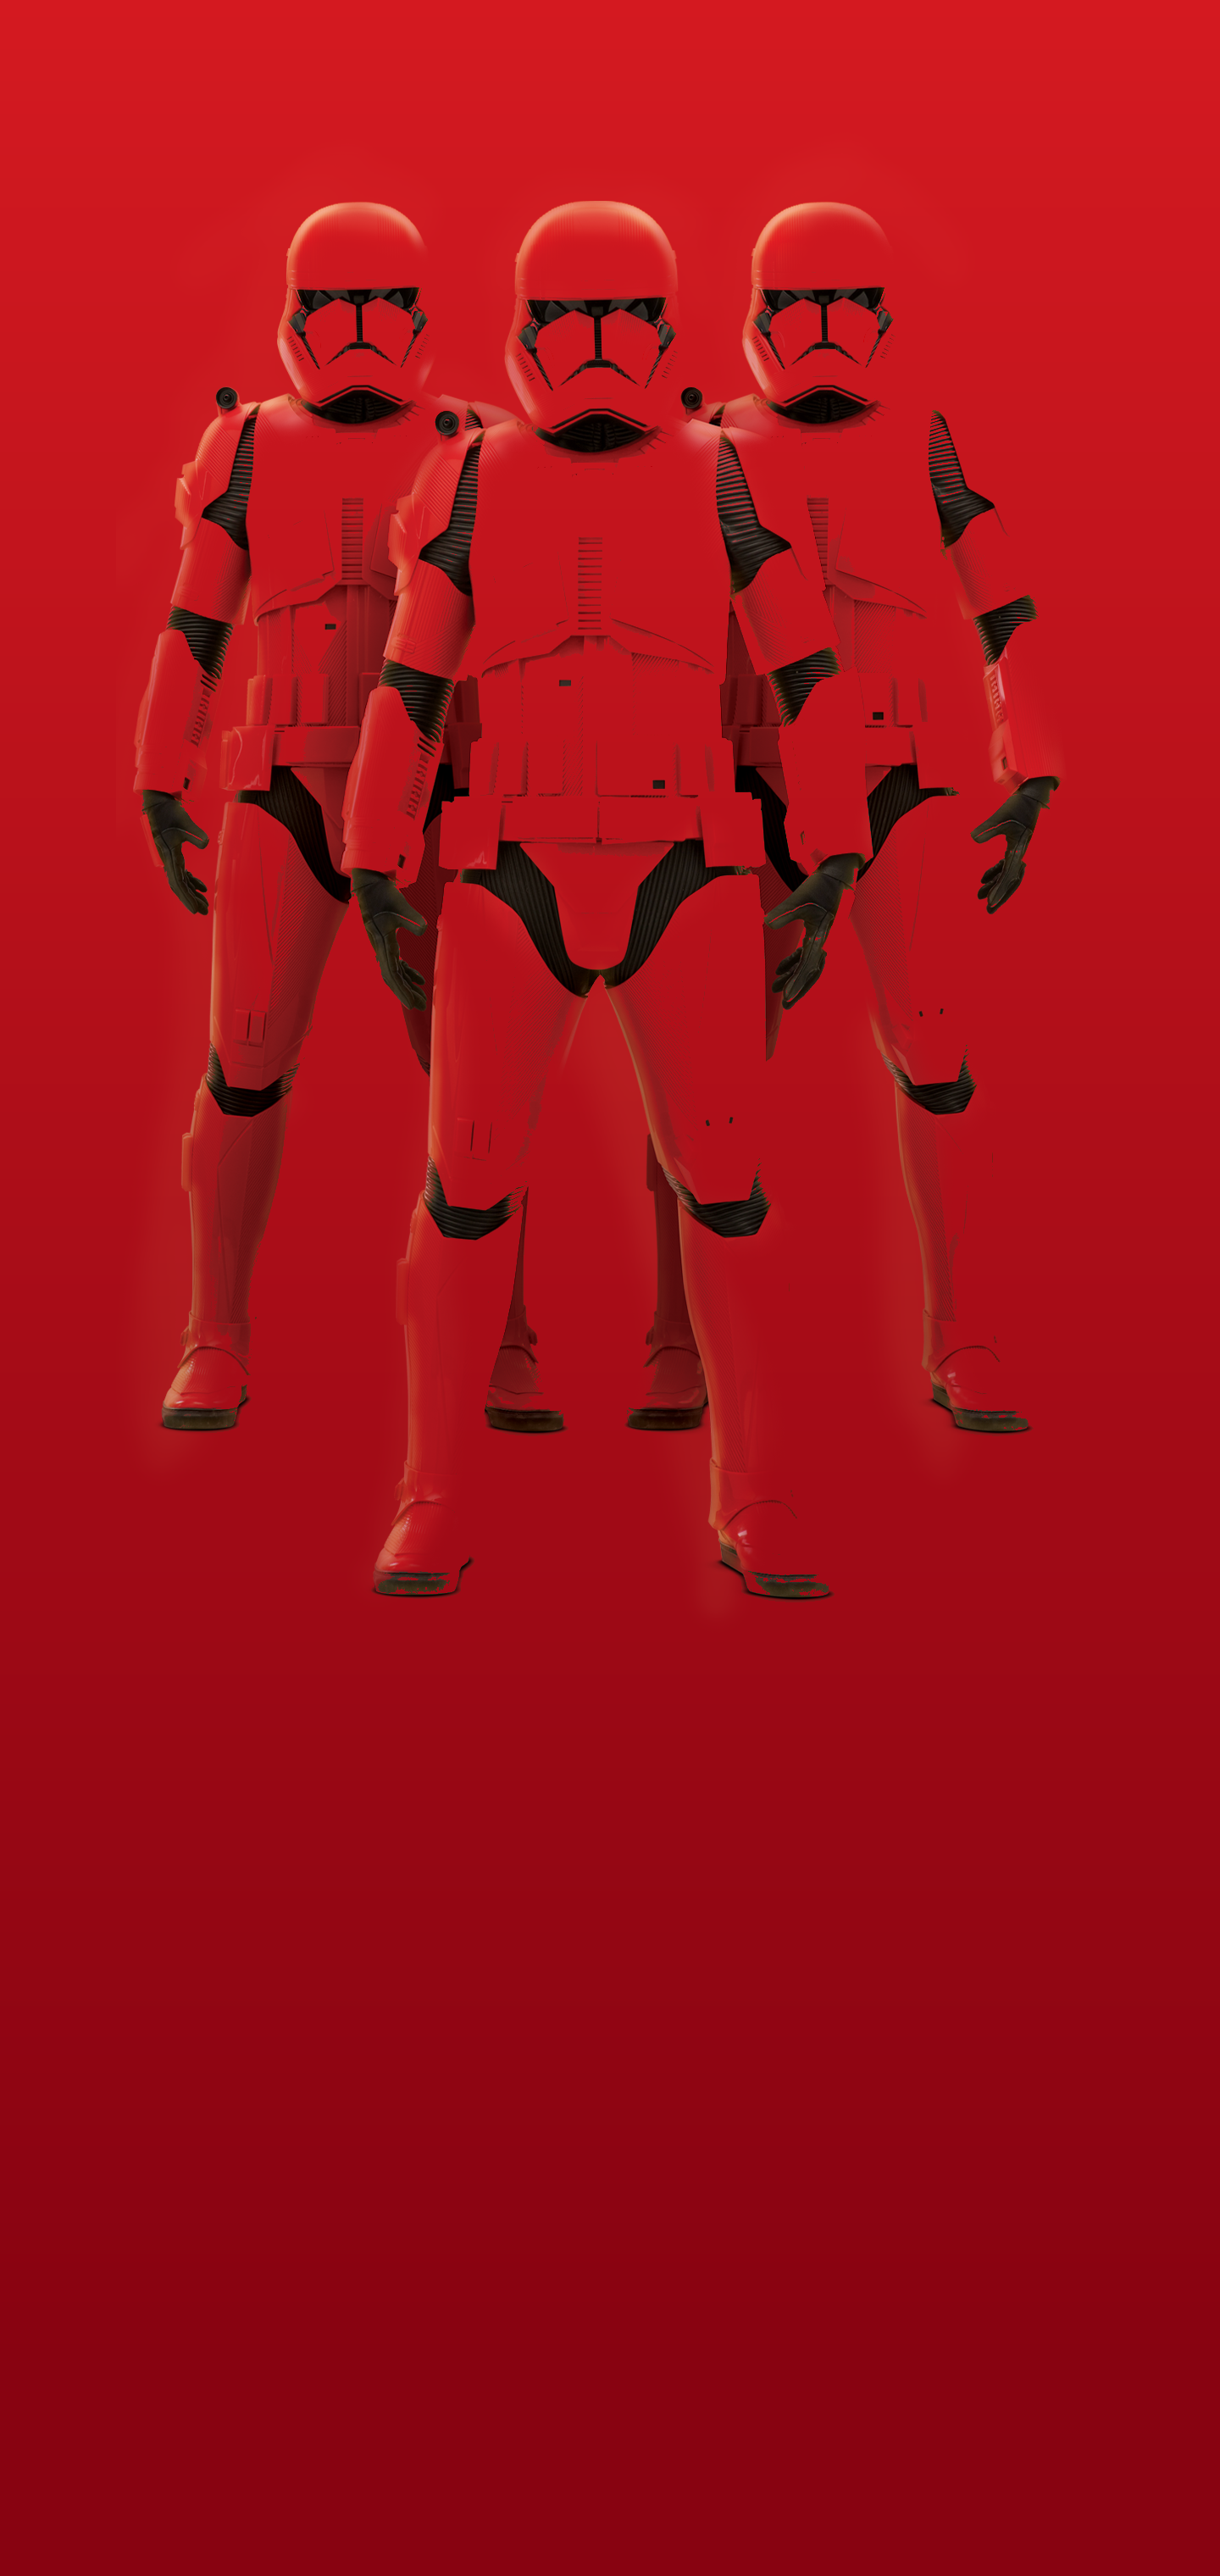 Red Star Wars Wallpapers Top Free Red Star Wars Backgrounds Wallpaperaccess